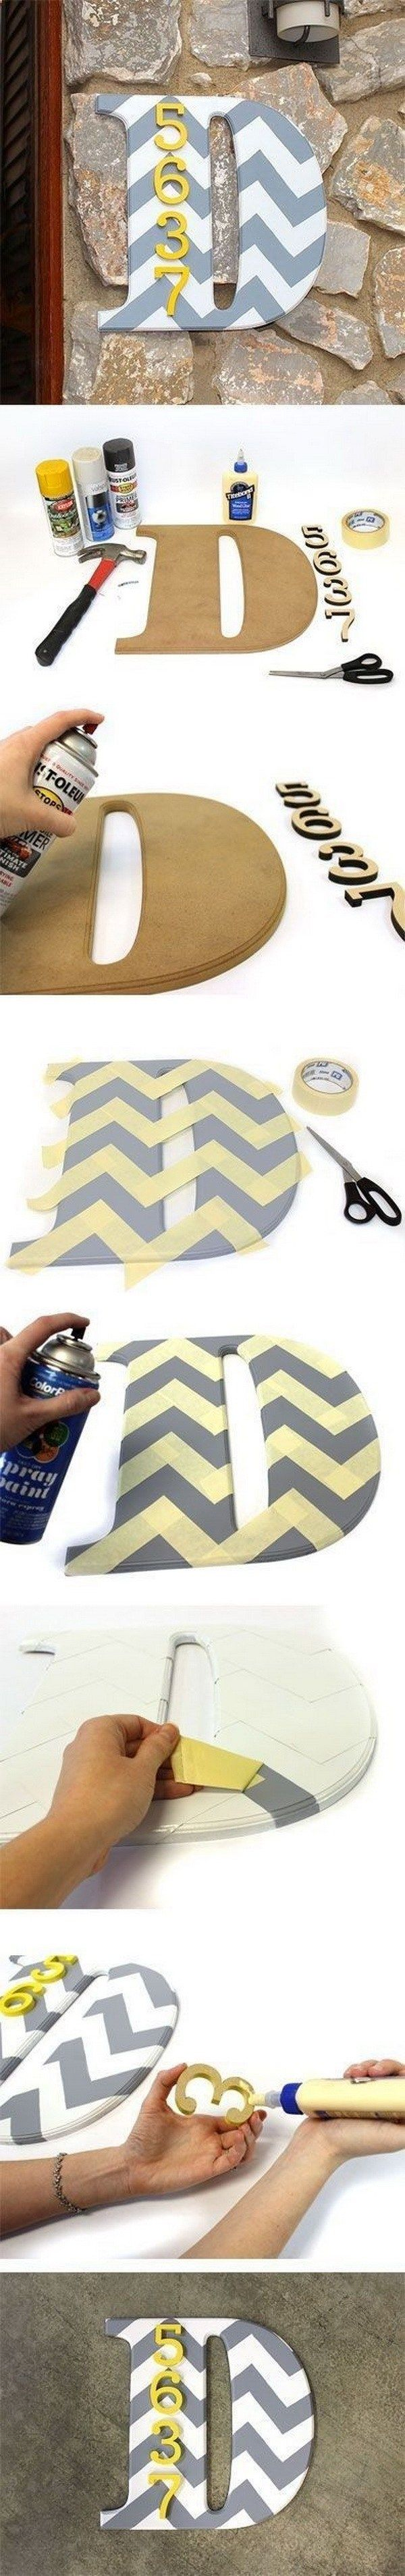 1000+ ideas about House ddress Numbers on Pinterest ddress ... - ^